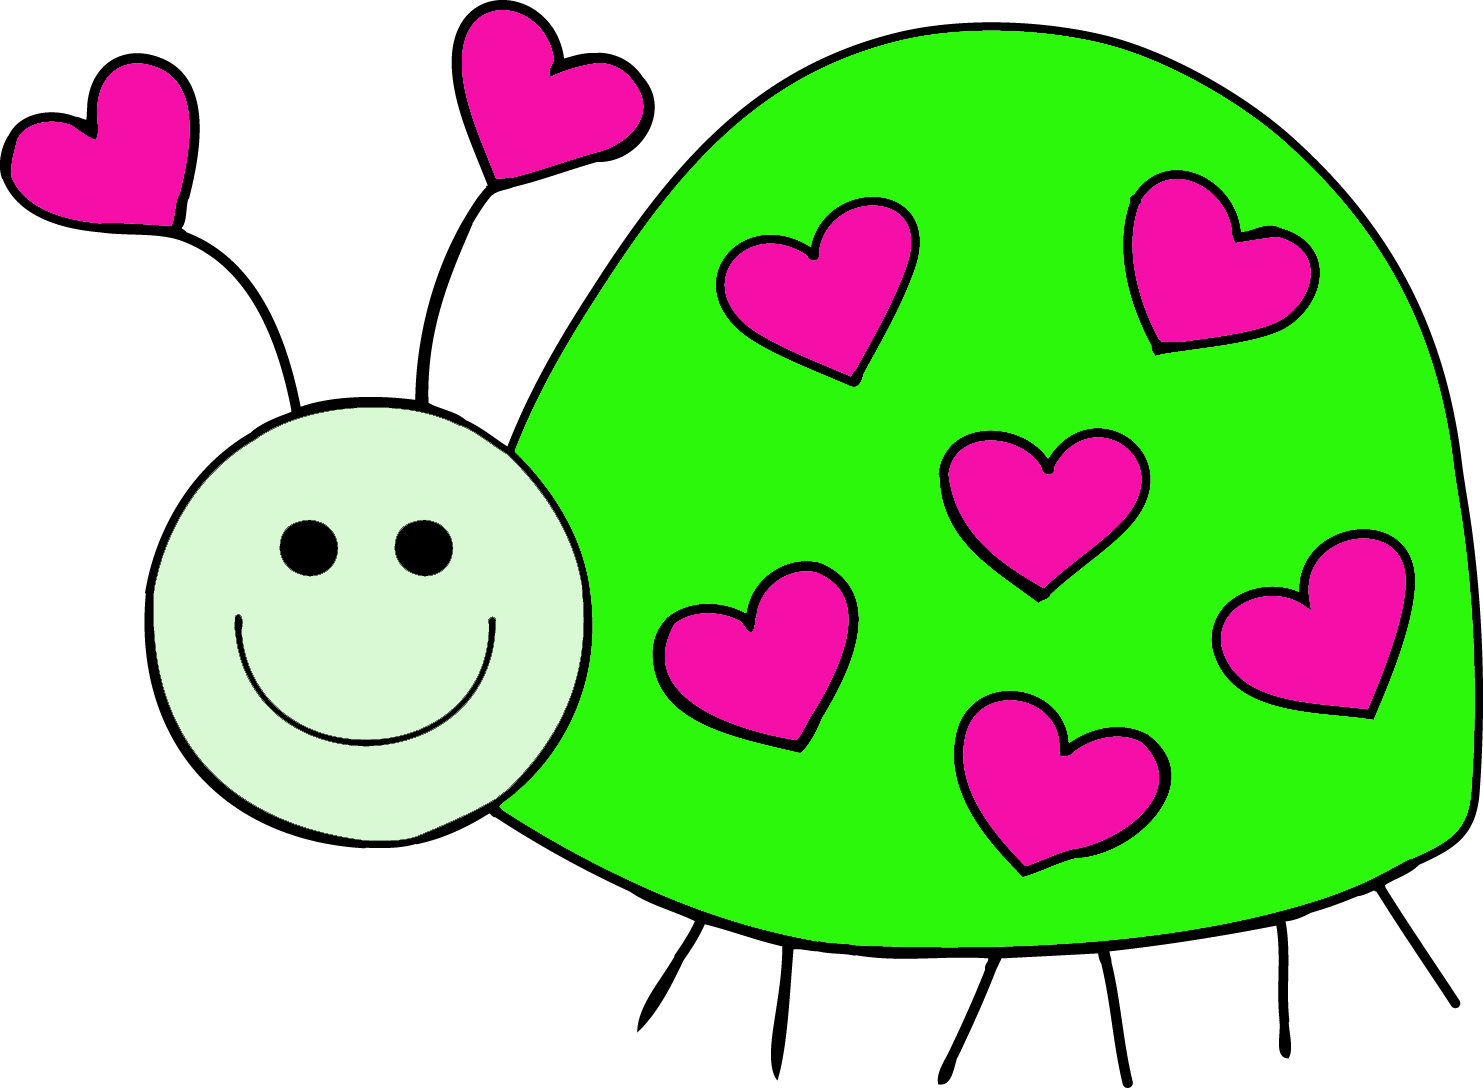 Clipart For Kid at GetDrawings.com | Free for personal use Clipart ...